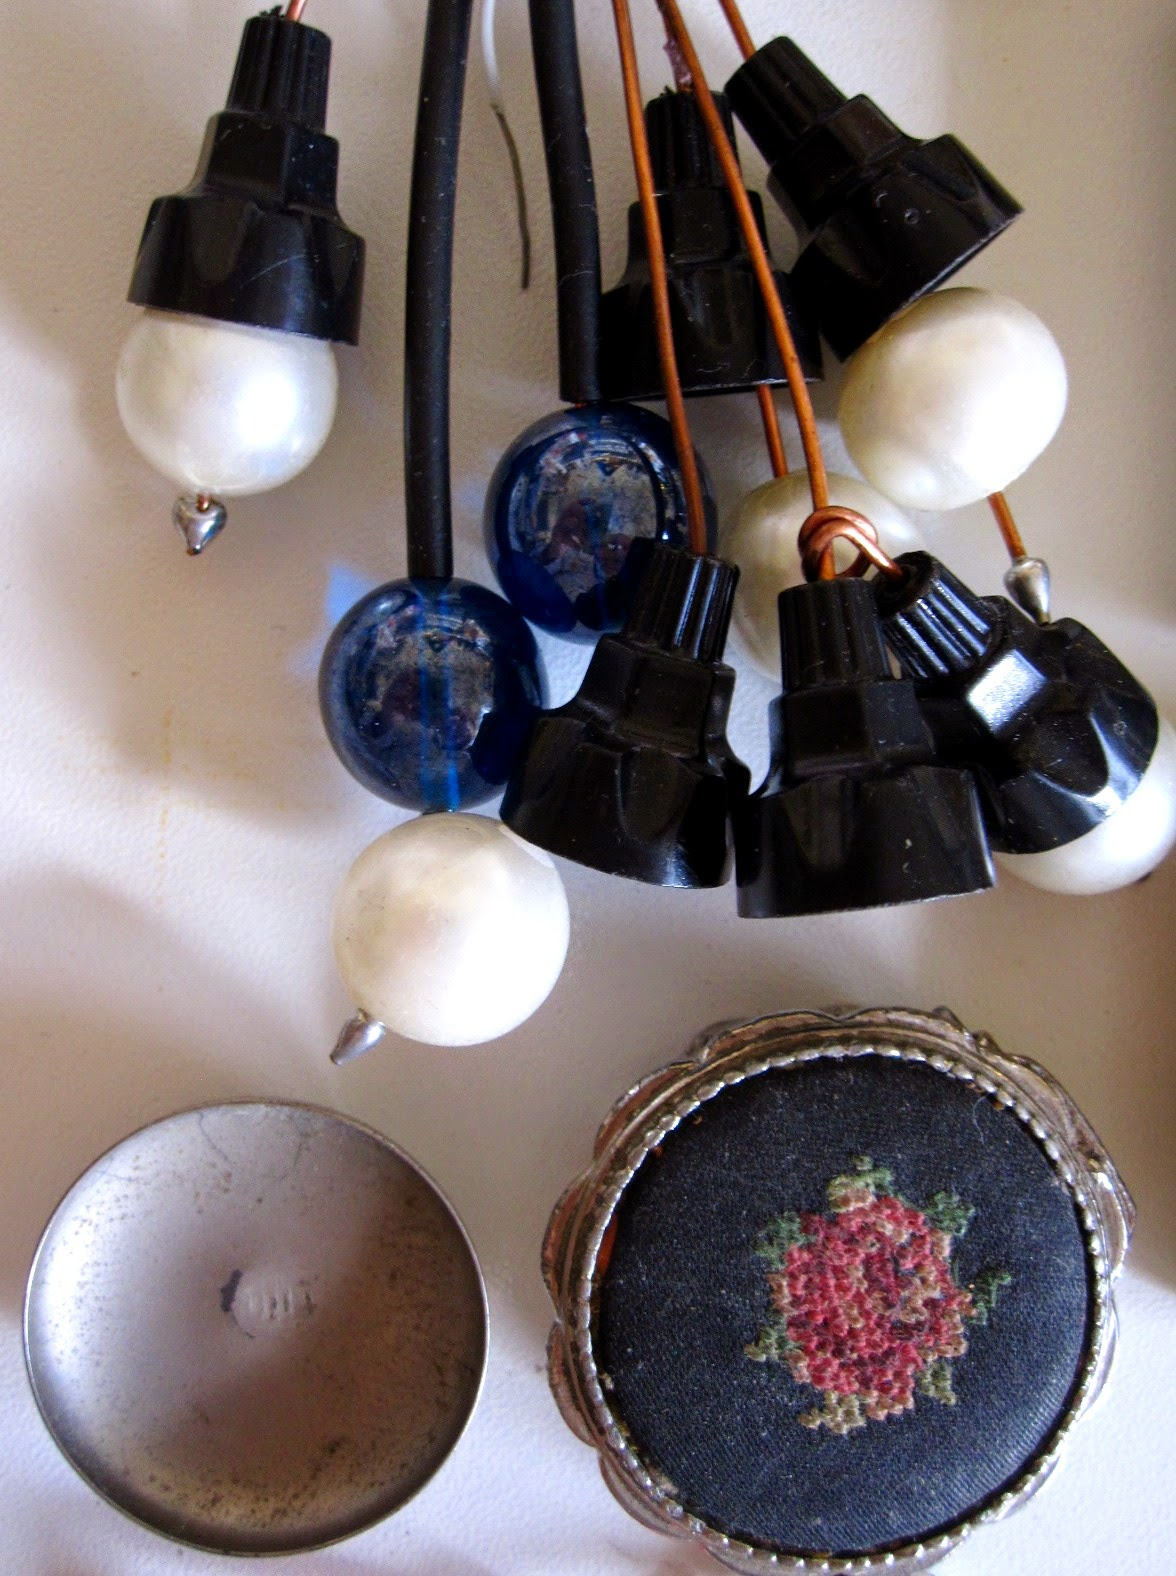 Collection of vintage plastic bits that could make modern miniature light fittings, plus a tiny embroidered box and a little round metal platter.